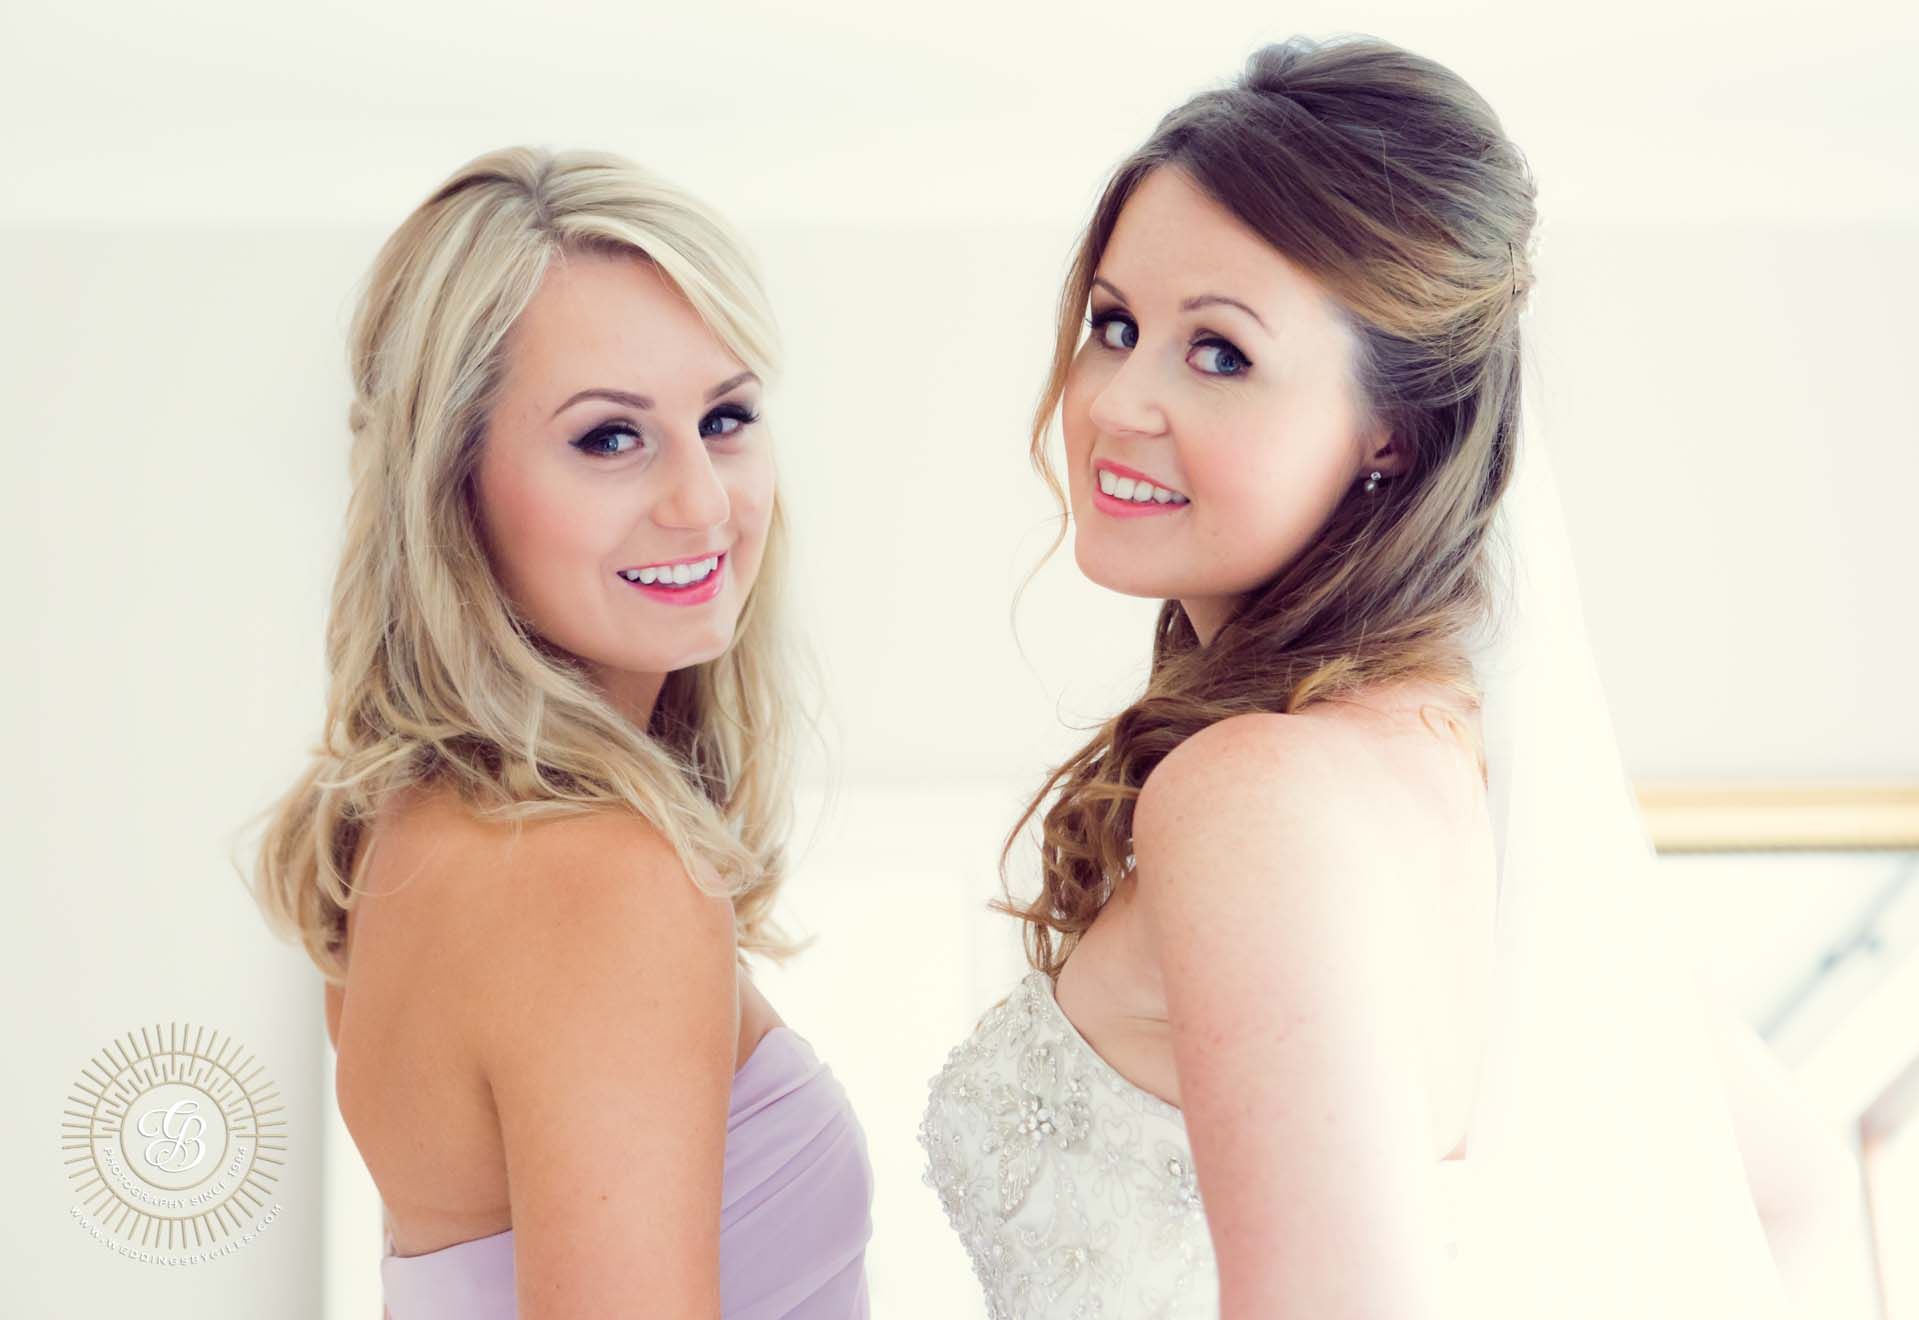 Portrait of Bride and her sister bridesmaid